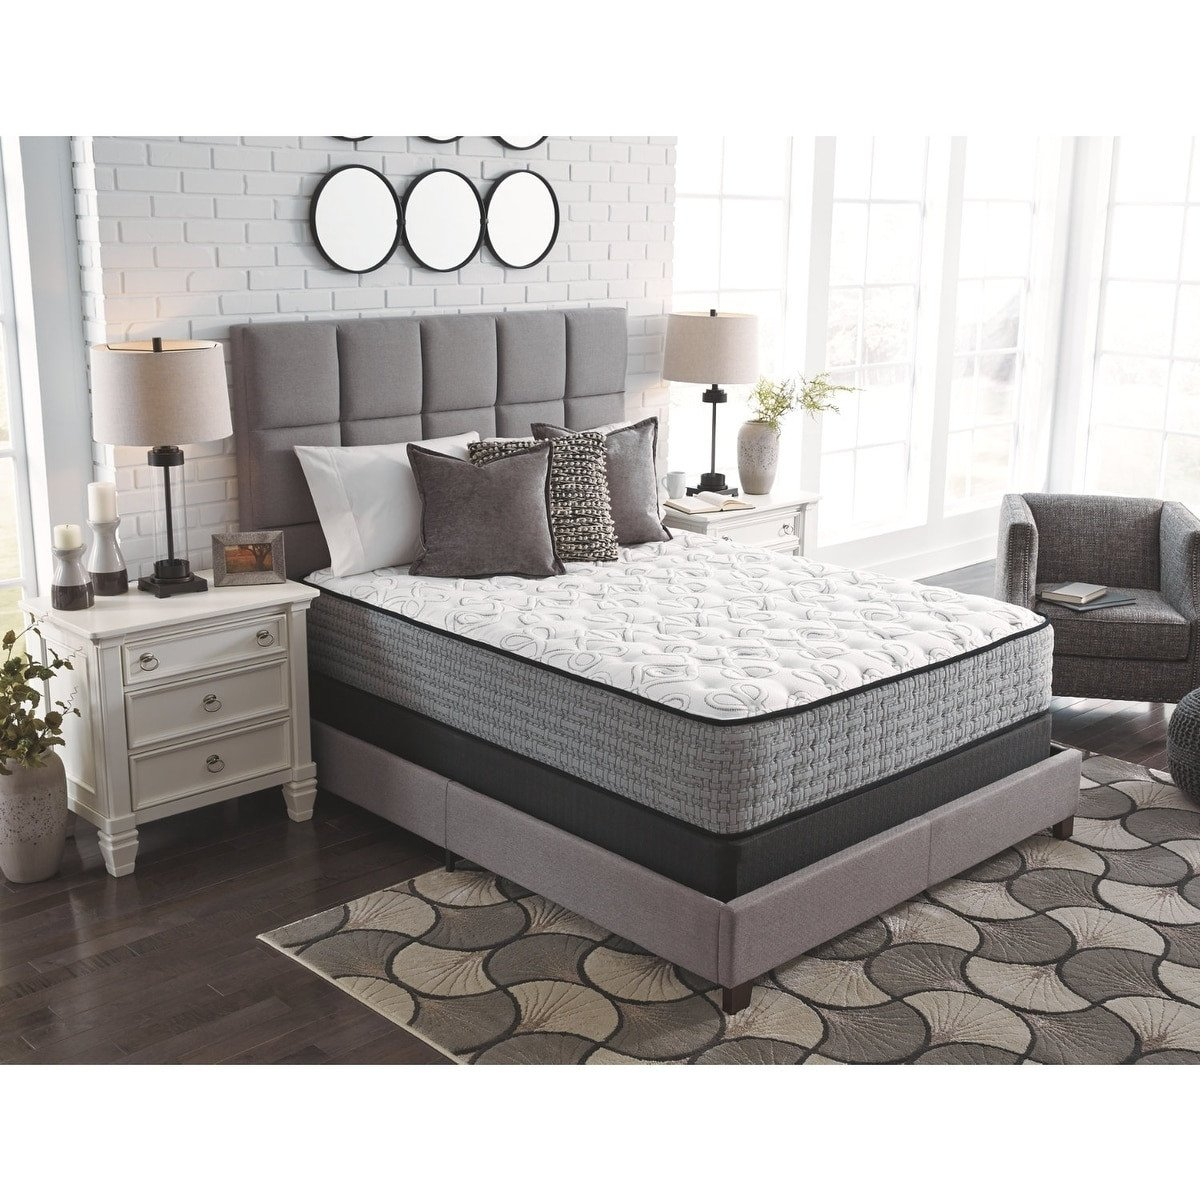 Ashley Furniture Bedroom Set 14 Piece Awesome ashley Furniture Signature Design Manhattan Design Firm